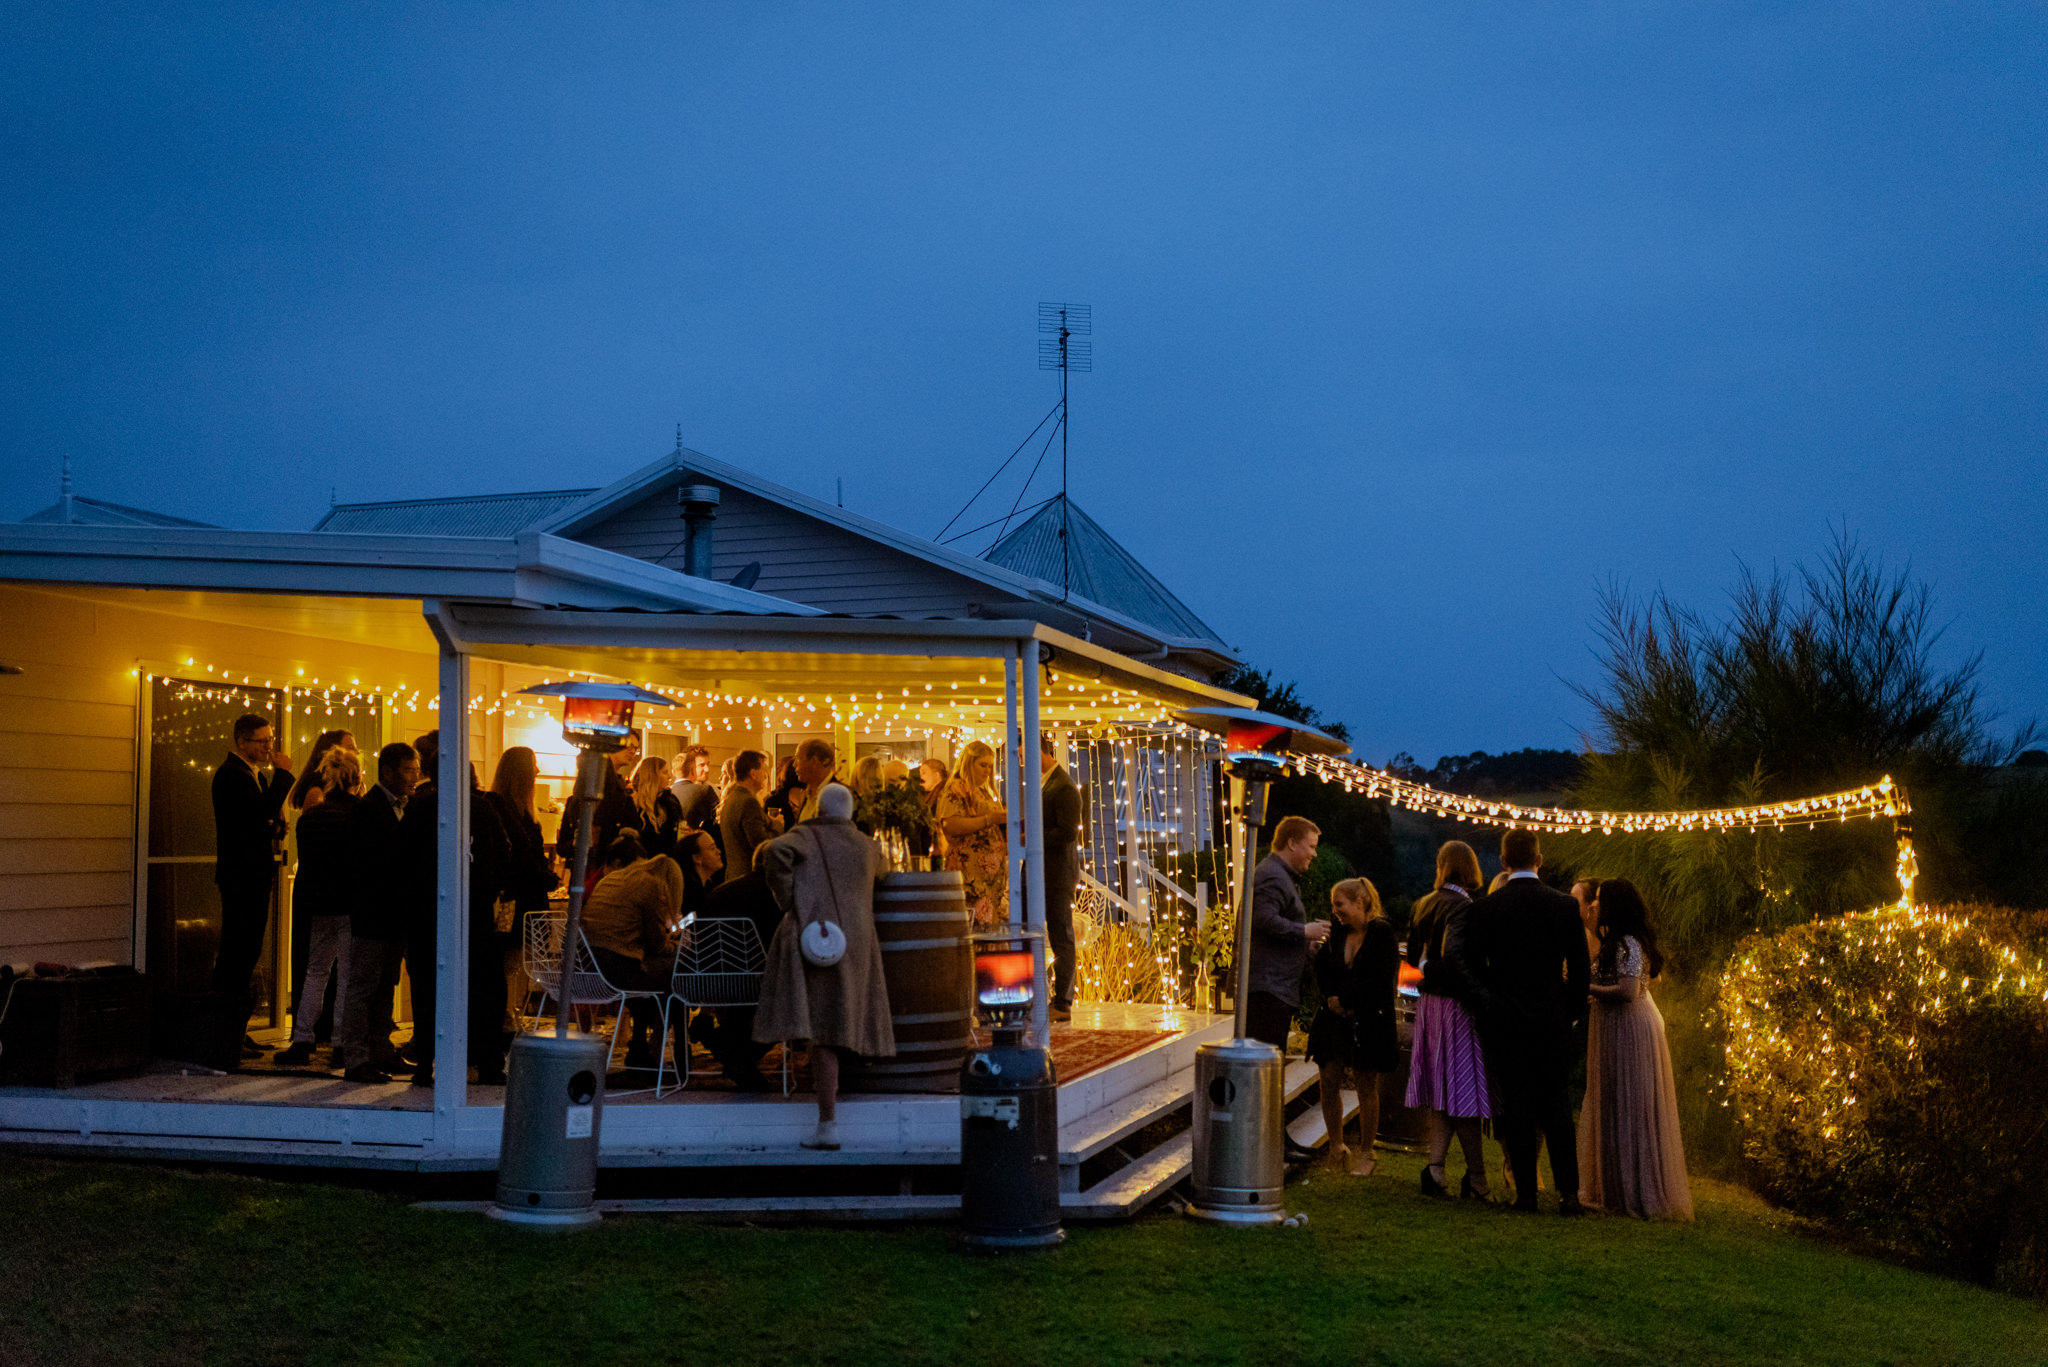 Party on a backyard verandah lit up by yellow fairy lights at dusk